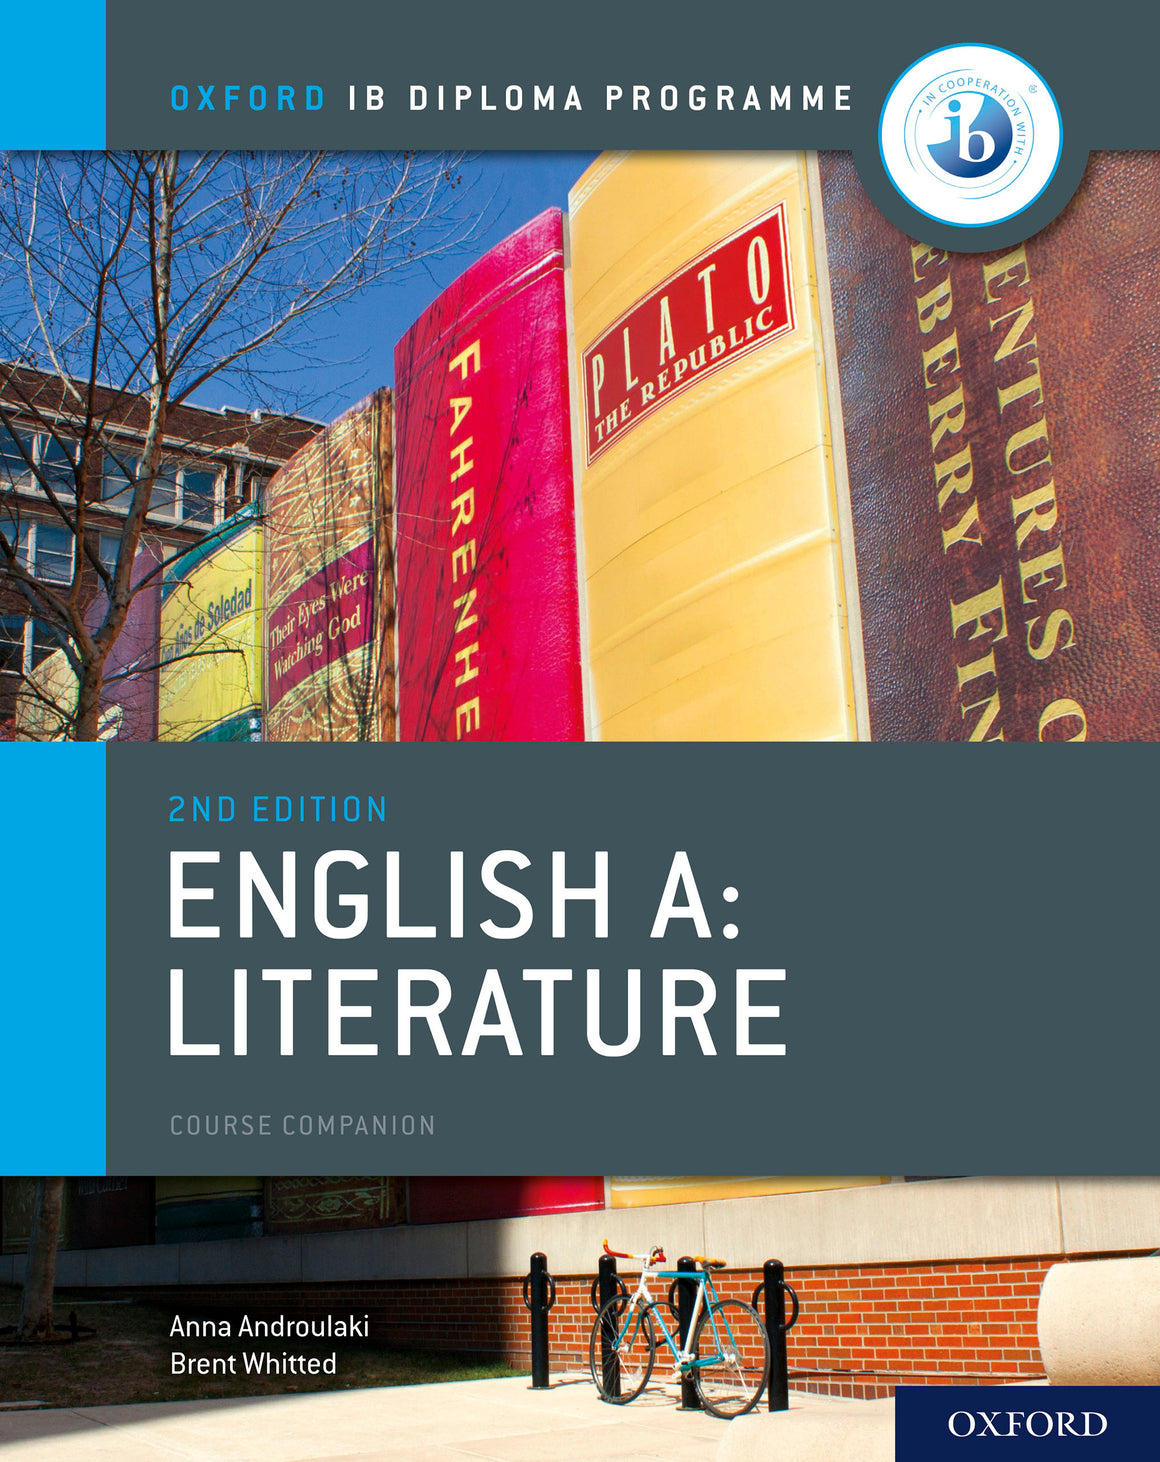 Oxford IB Diploma Programme: English A: Literature Course Companion